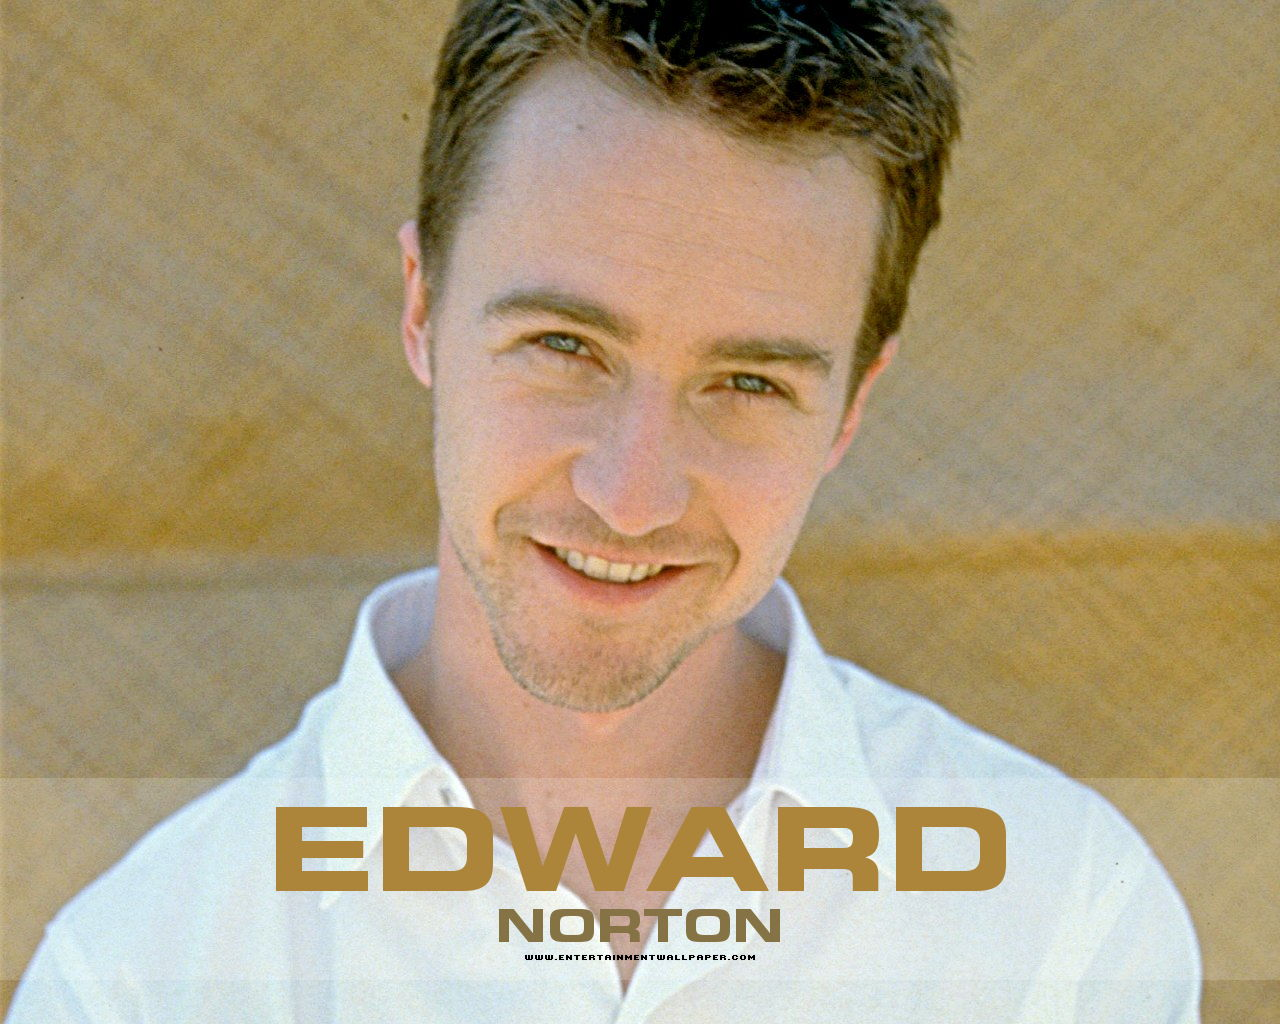 garment inspection service Edward Norton Wallpaper 1280x1024